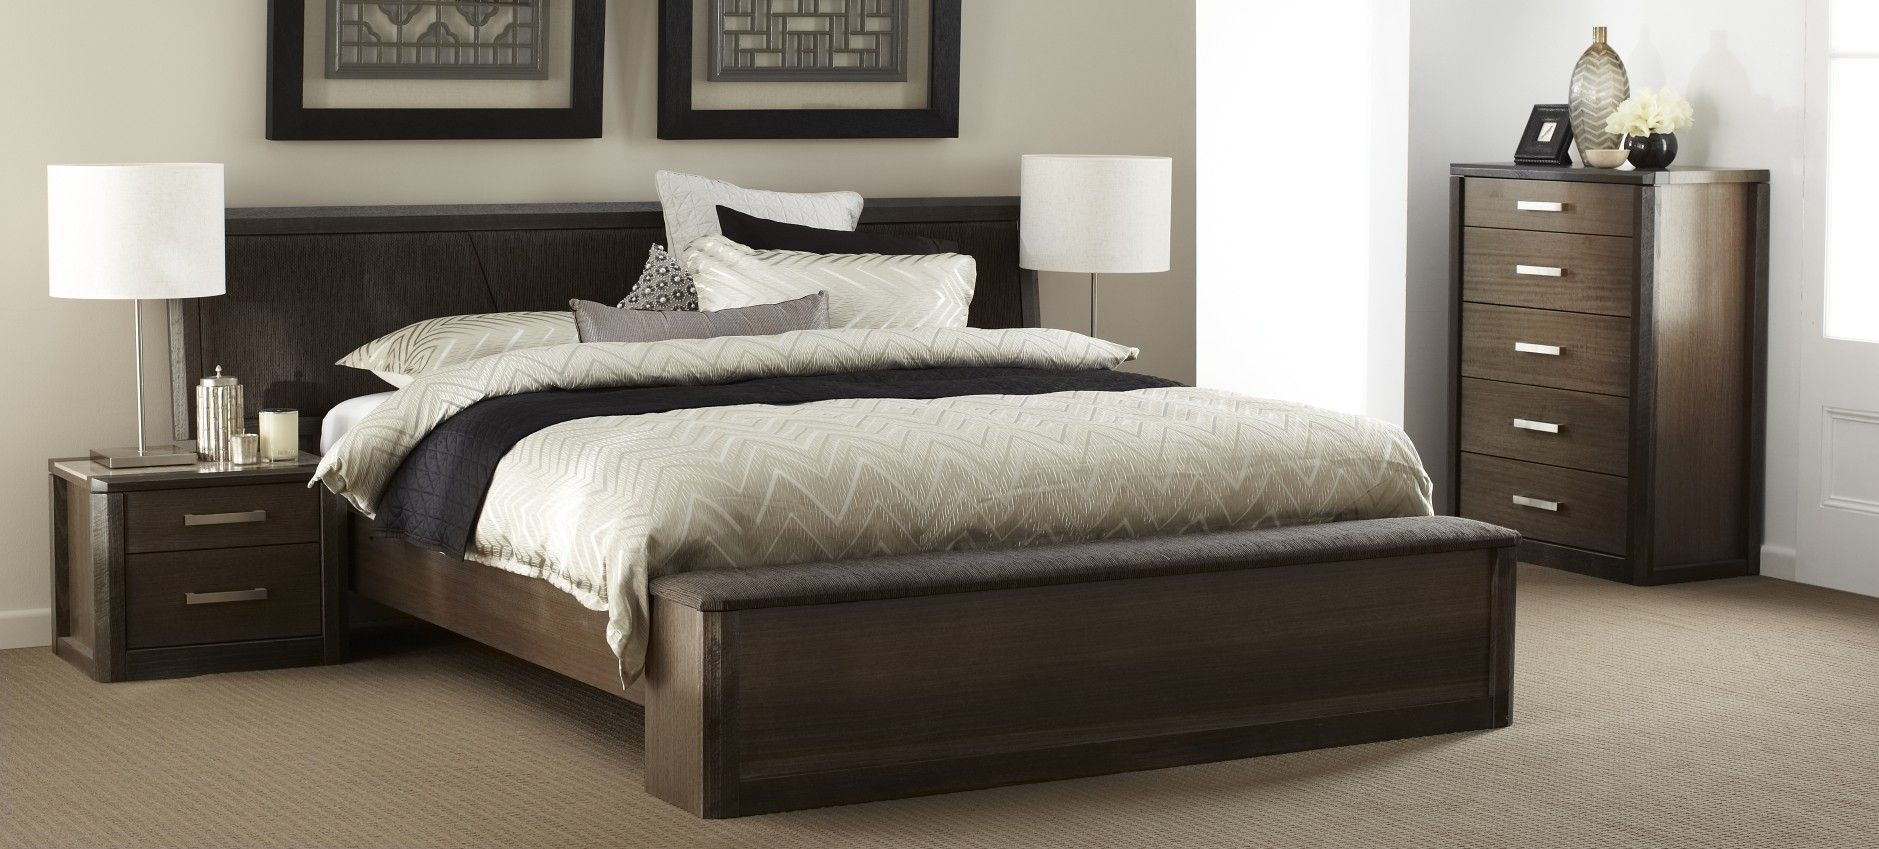 Maitland dark timber and upholstery bedroom furniture suite with ...